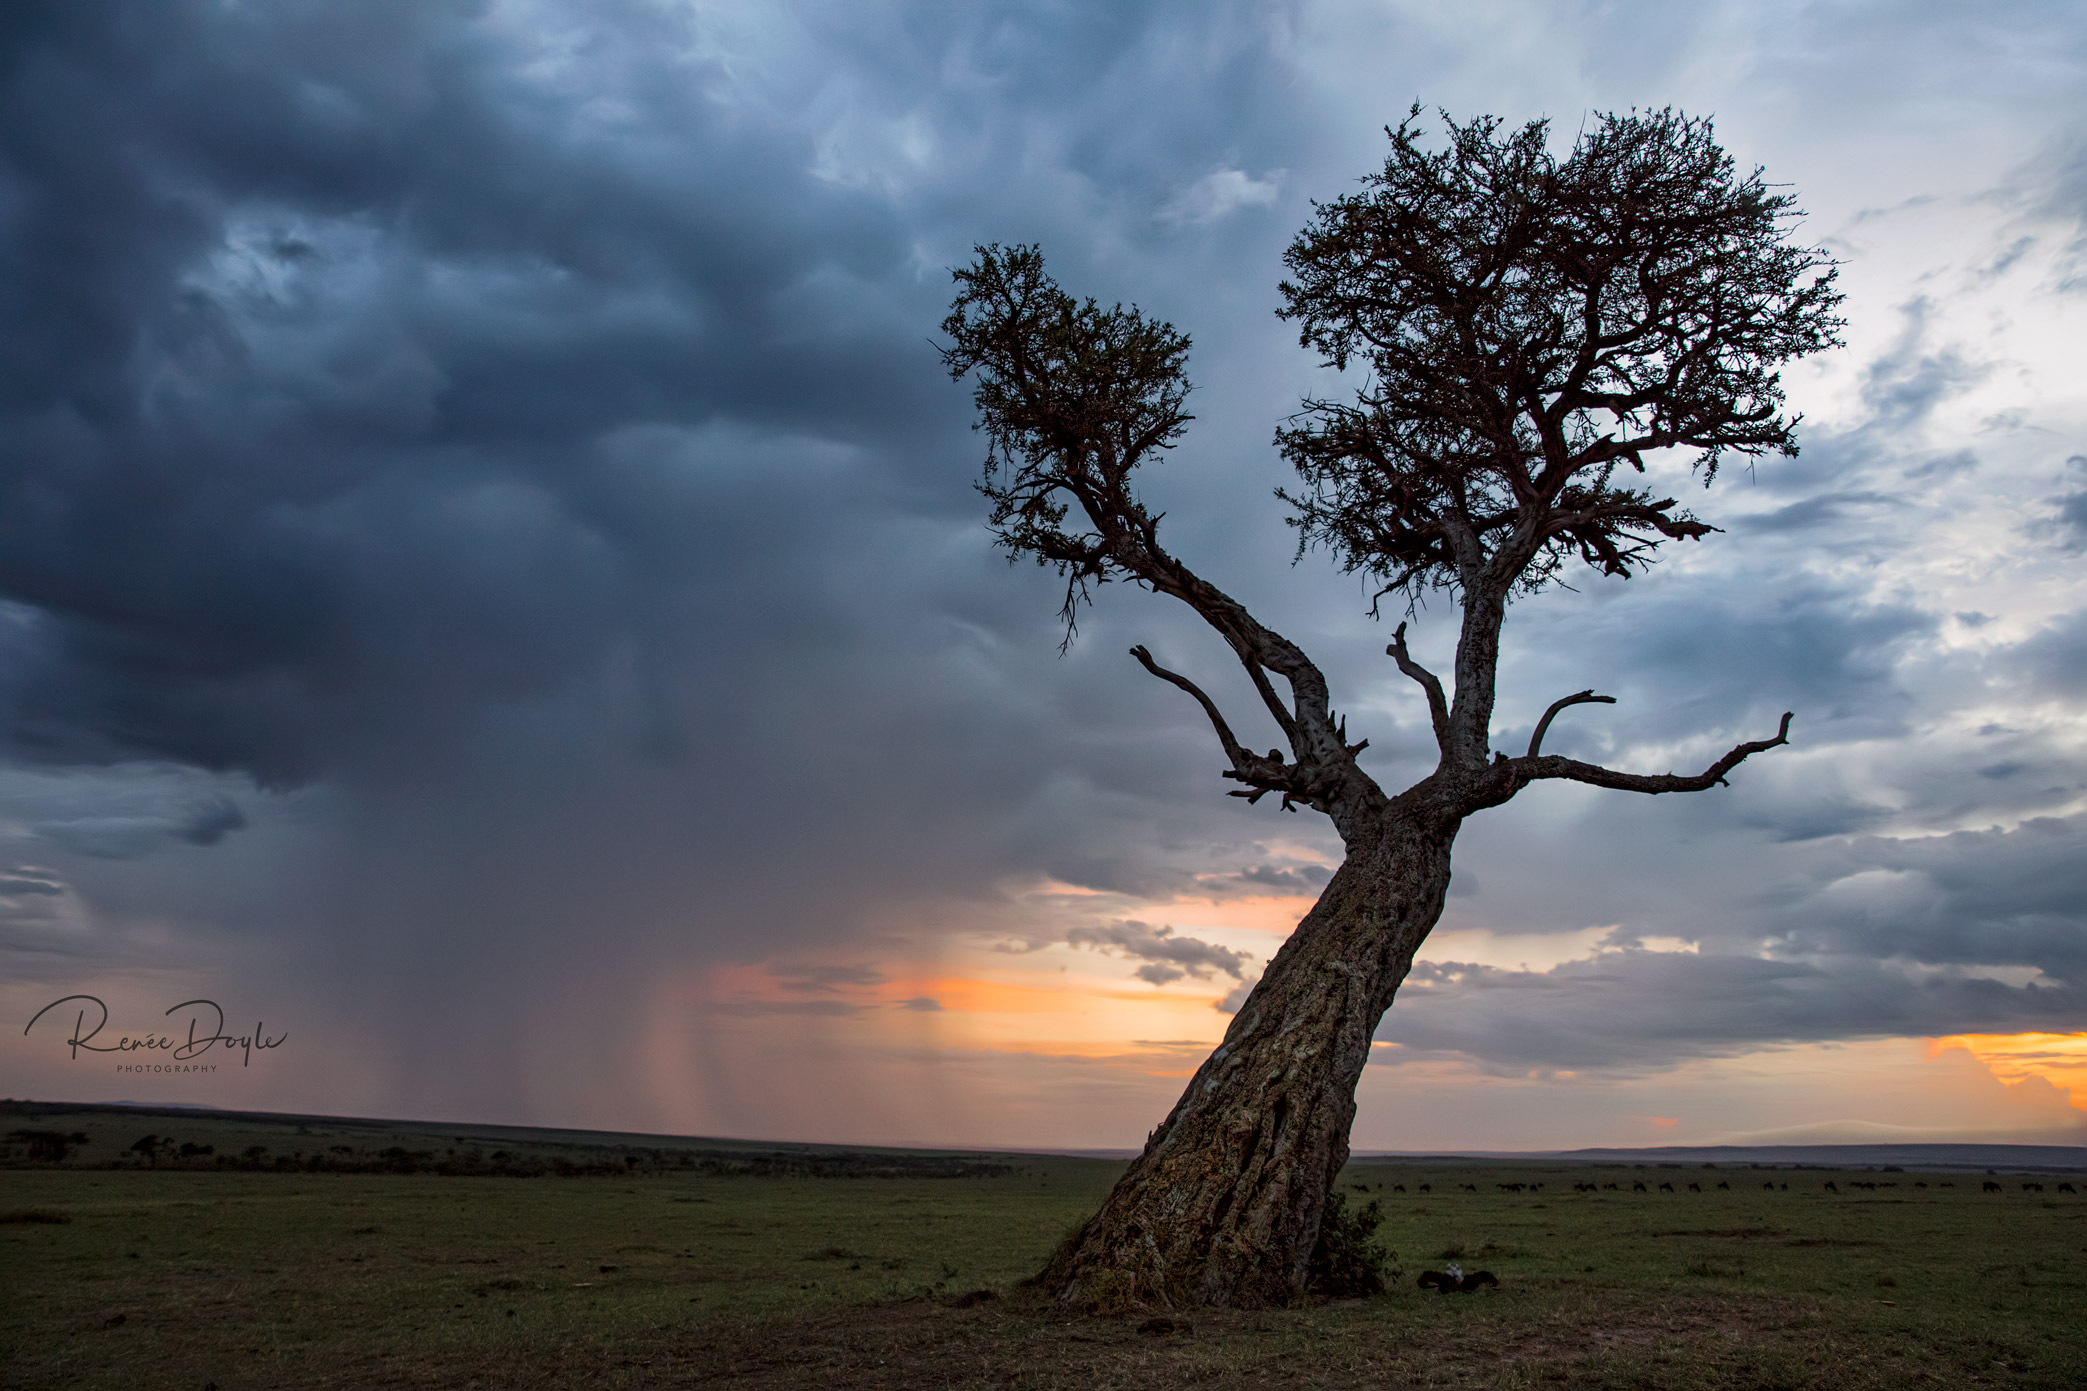 Sunset, Mara Plains, Kenya, Africa, Sundowner, Renee Doyle Photography